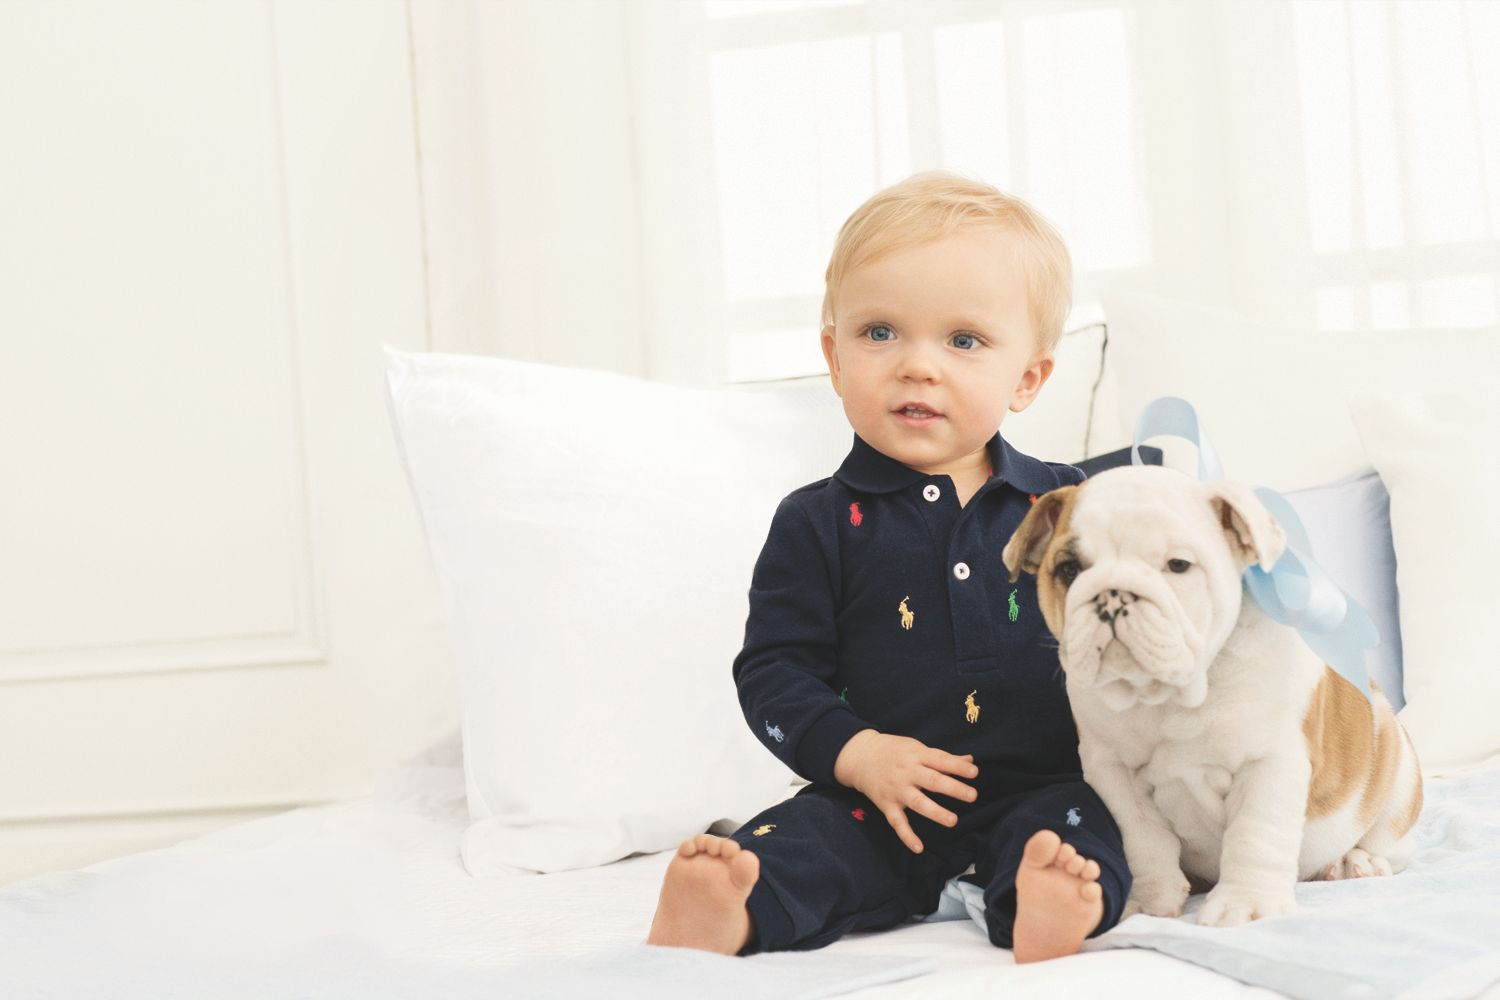 Ralph Lauren offers luxury and designer men's and women's clothing, kids' clothing, and baby clothes. and baby clothes. Enjoy free shipping on orders over $ Ralph Lauren. Double RL merchandise, Purple Label merchandise, Ralph Lauren luxury accessories and footwear, Ralph's Coffee product and merchandise, select home merchandise.